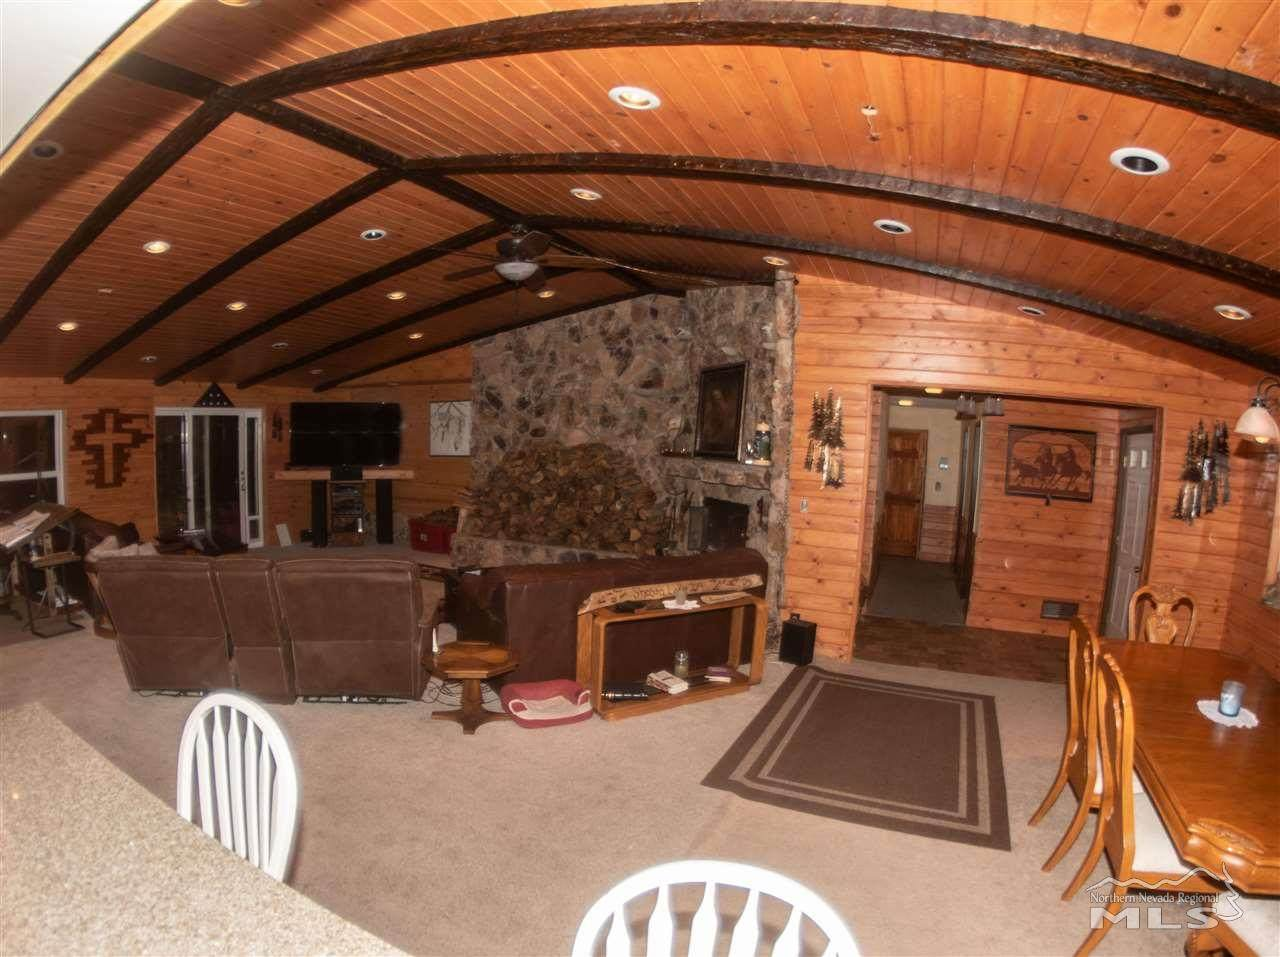 https://bt-photos.global.ssl.fastly.net/reno/orig_boomver_1_200011658-2.jpg